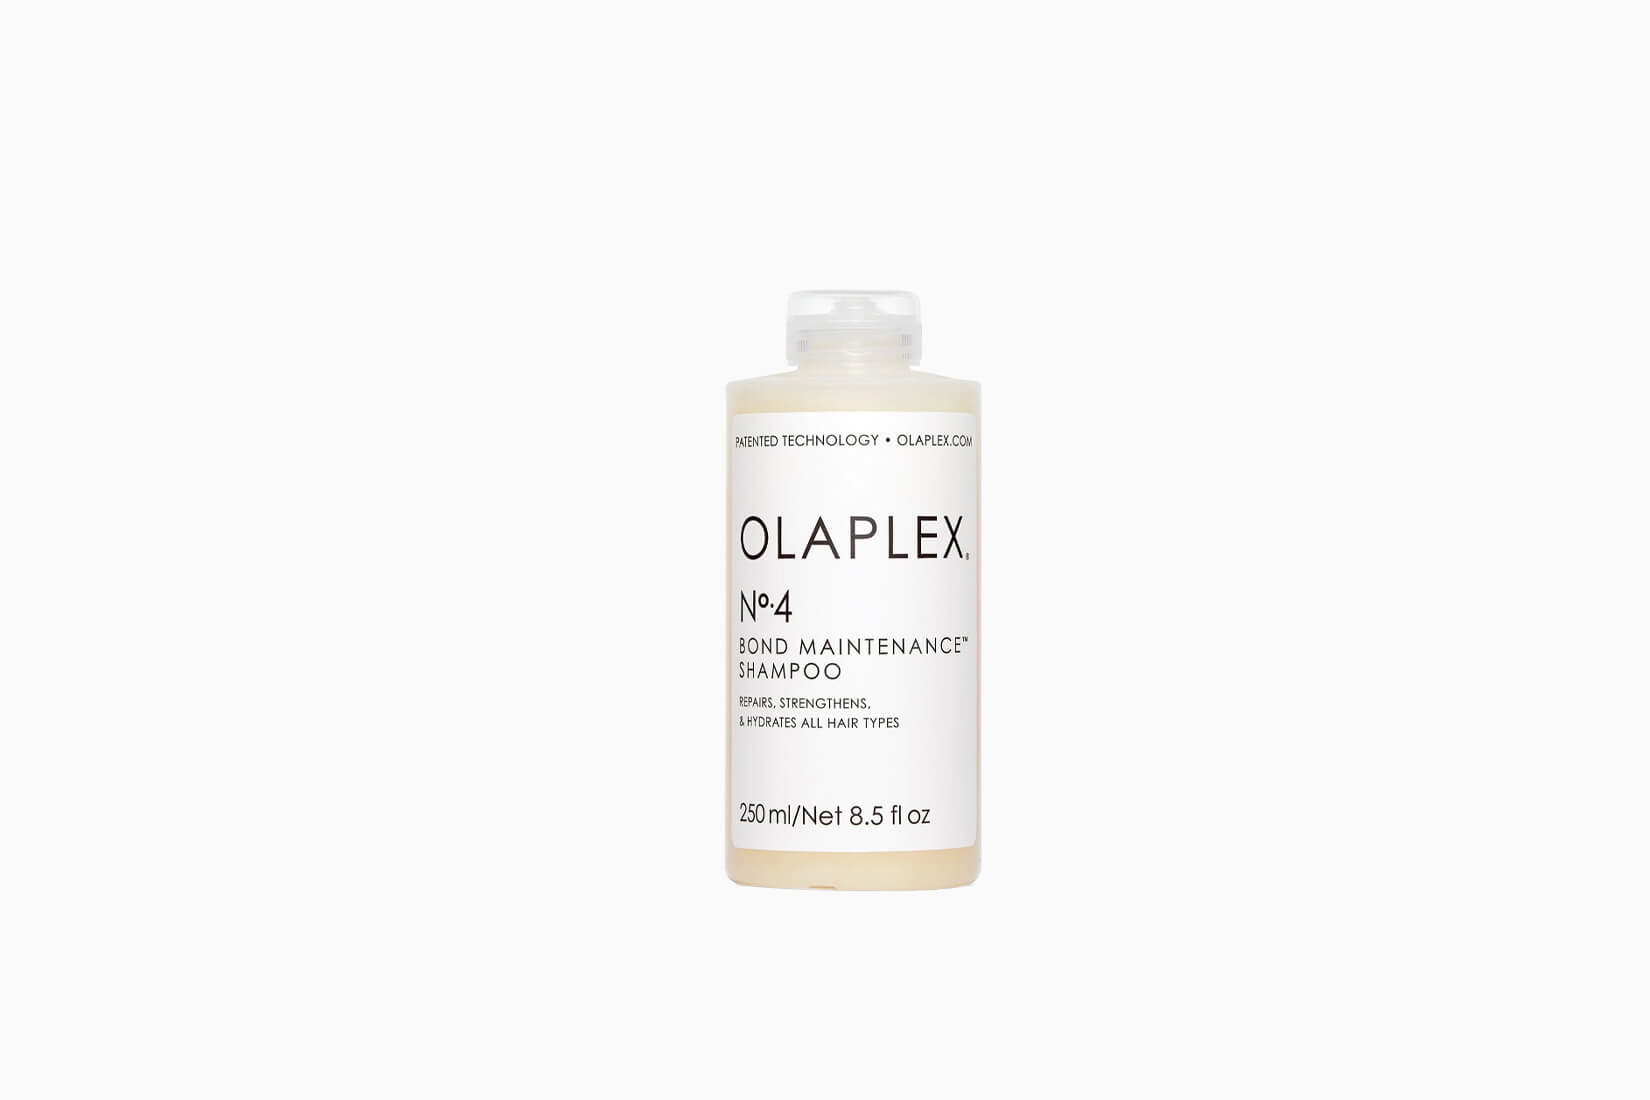 best hair growth shampoo women olaplex review - Luxe Digital